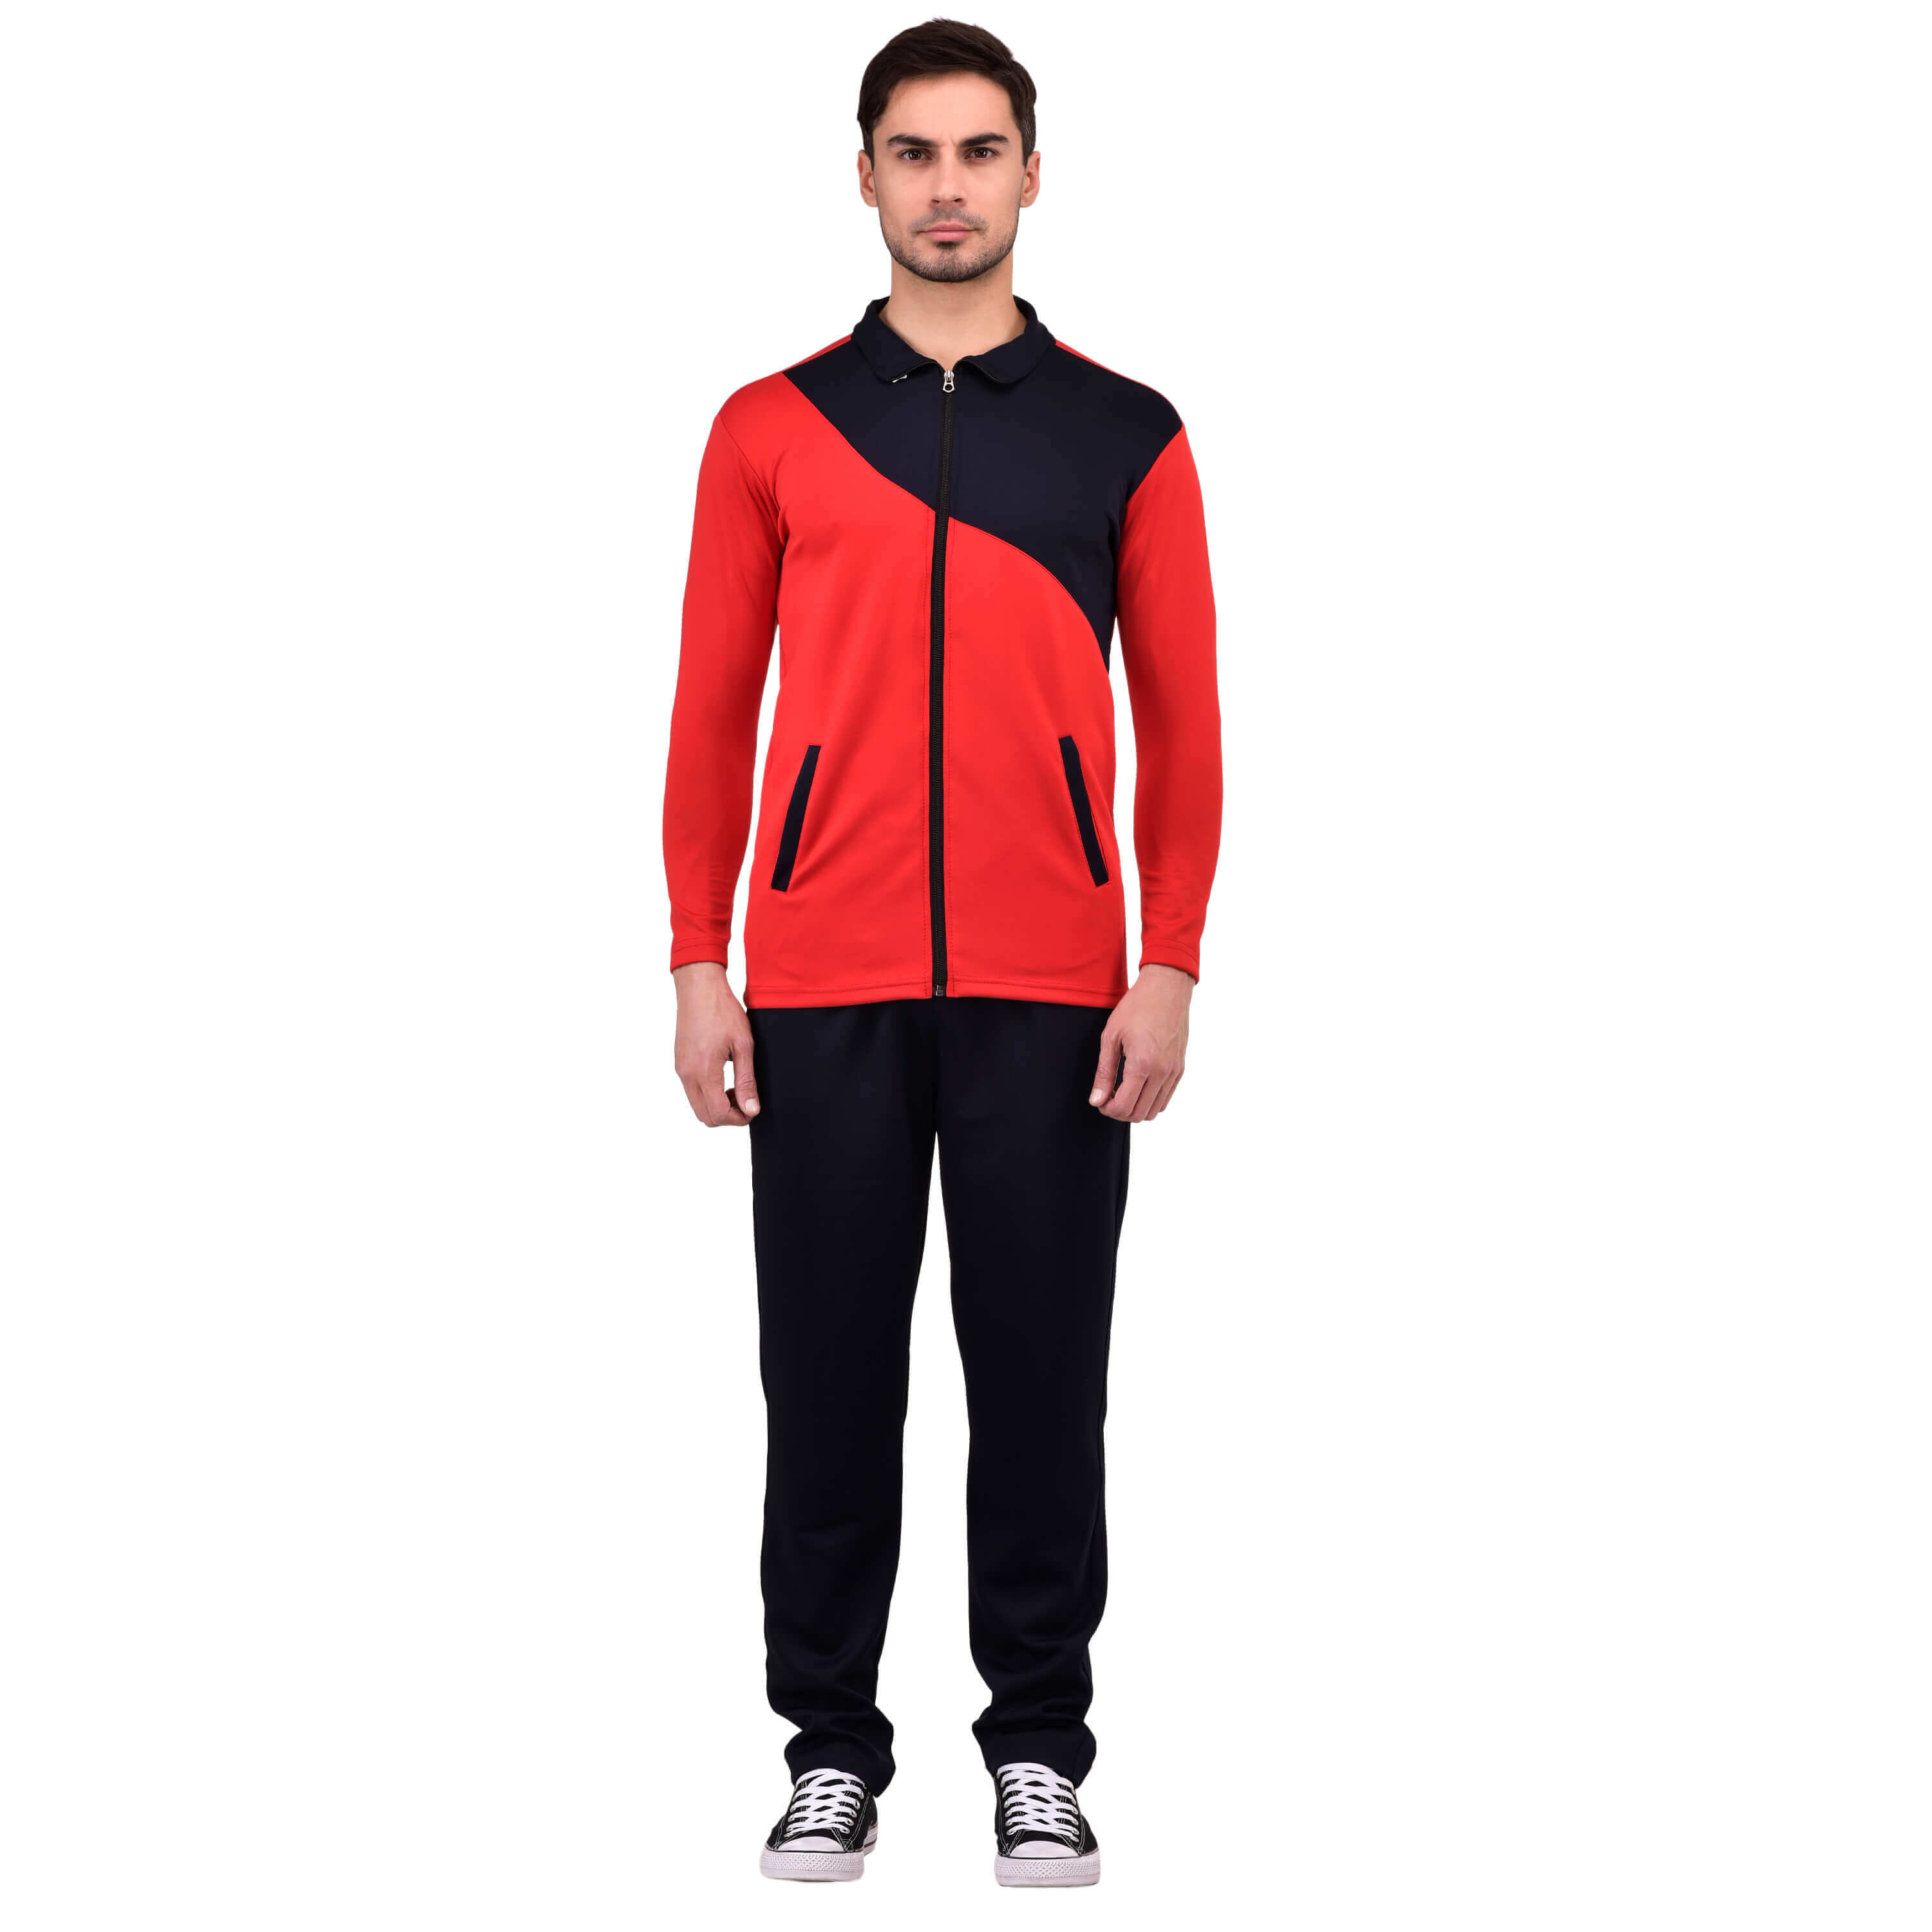 Mens Jogging Suits Manufacturers in Solapur